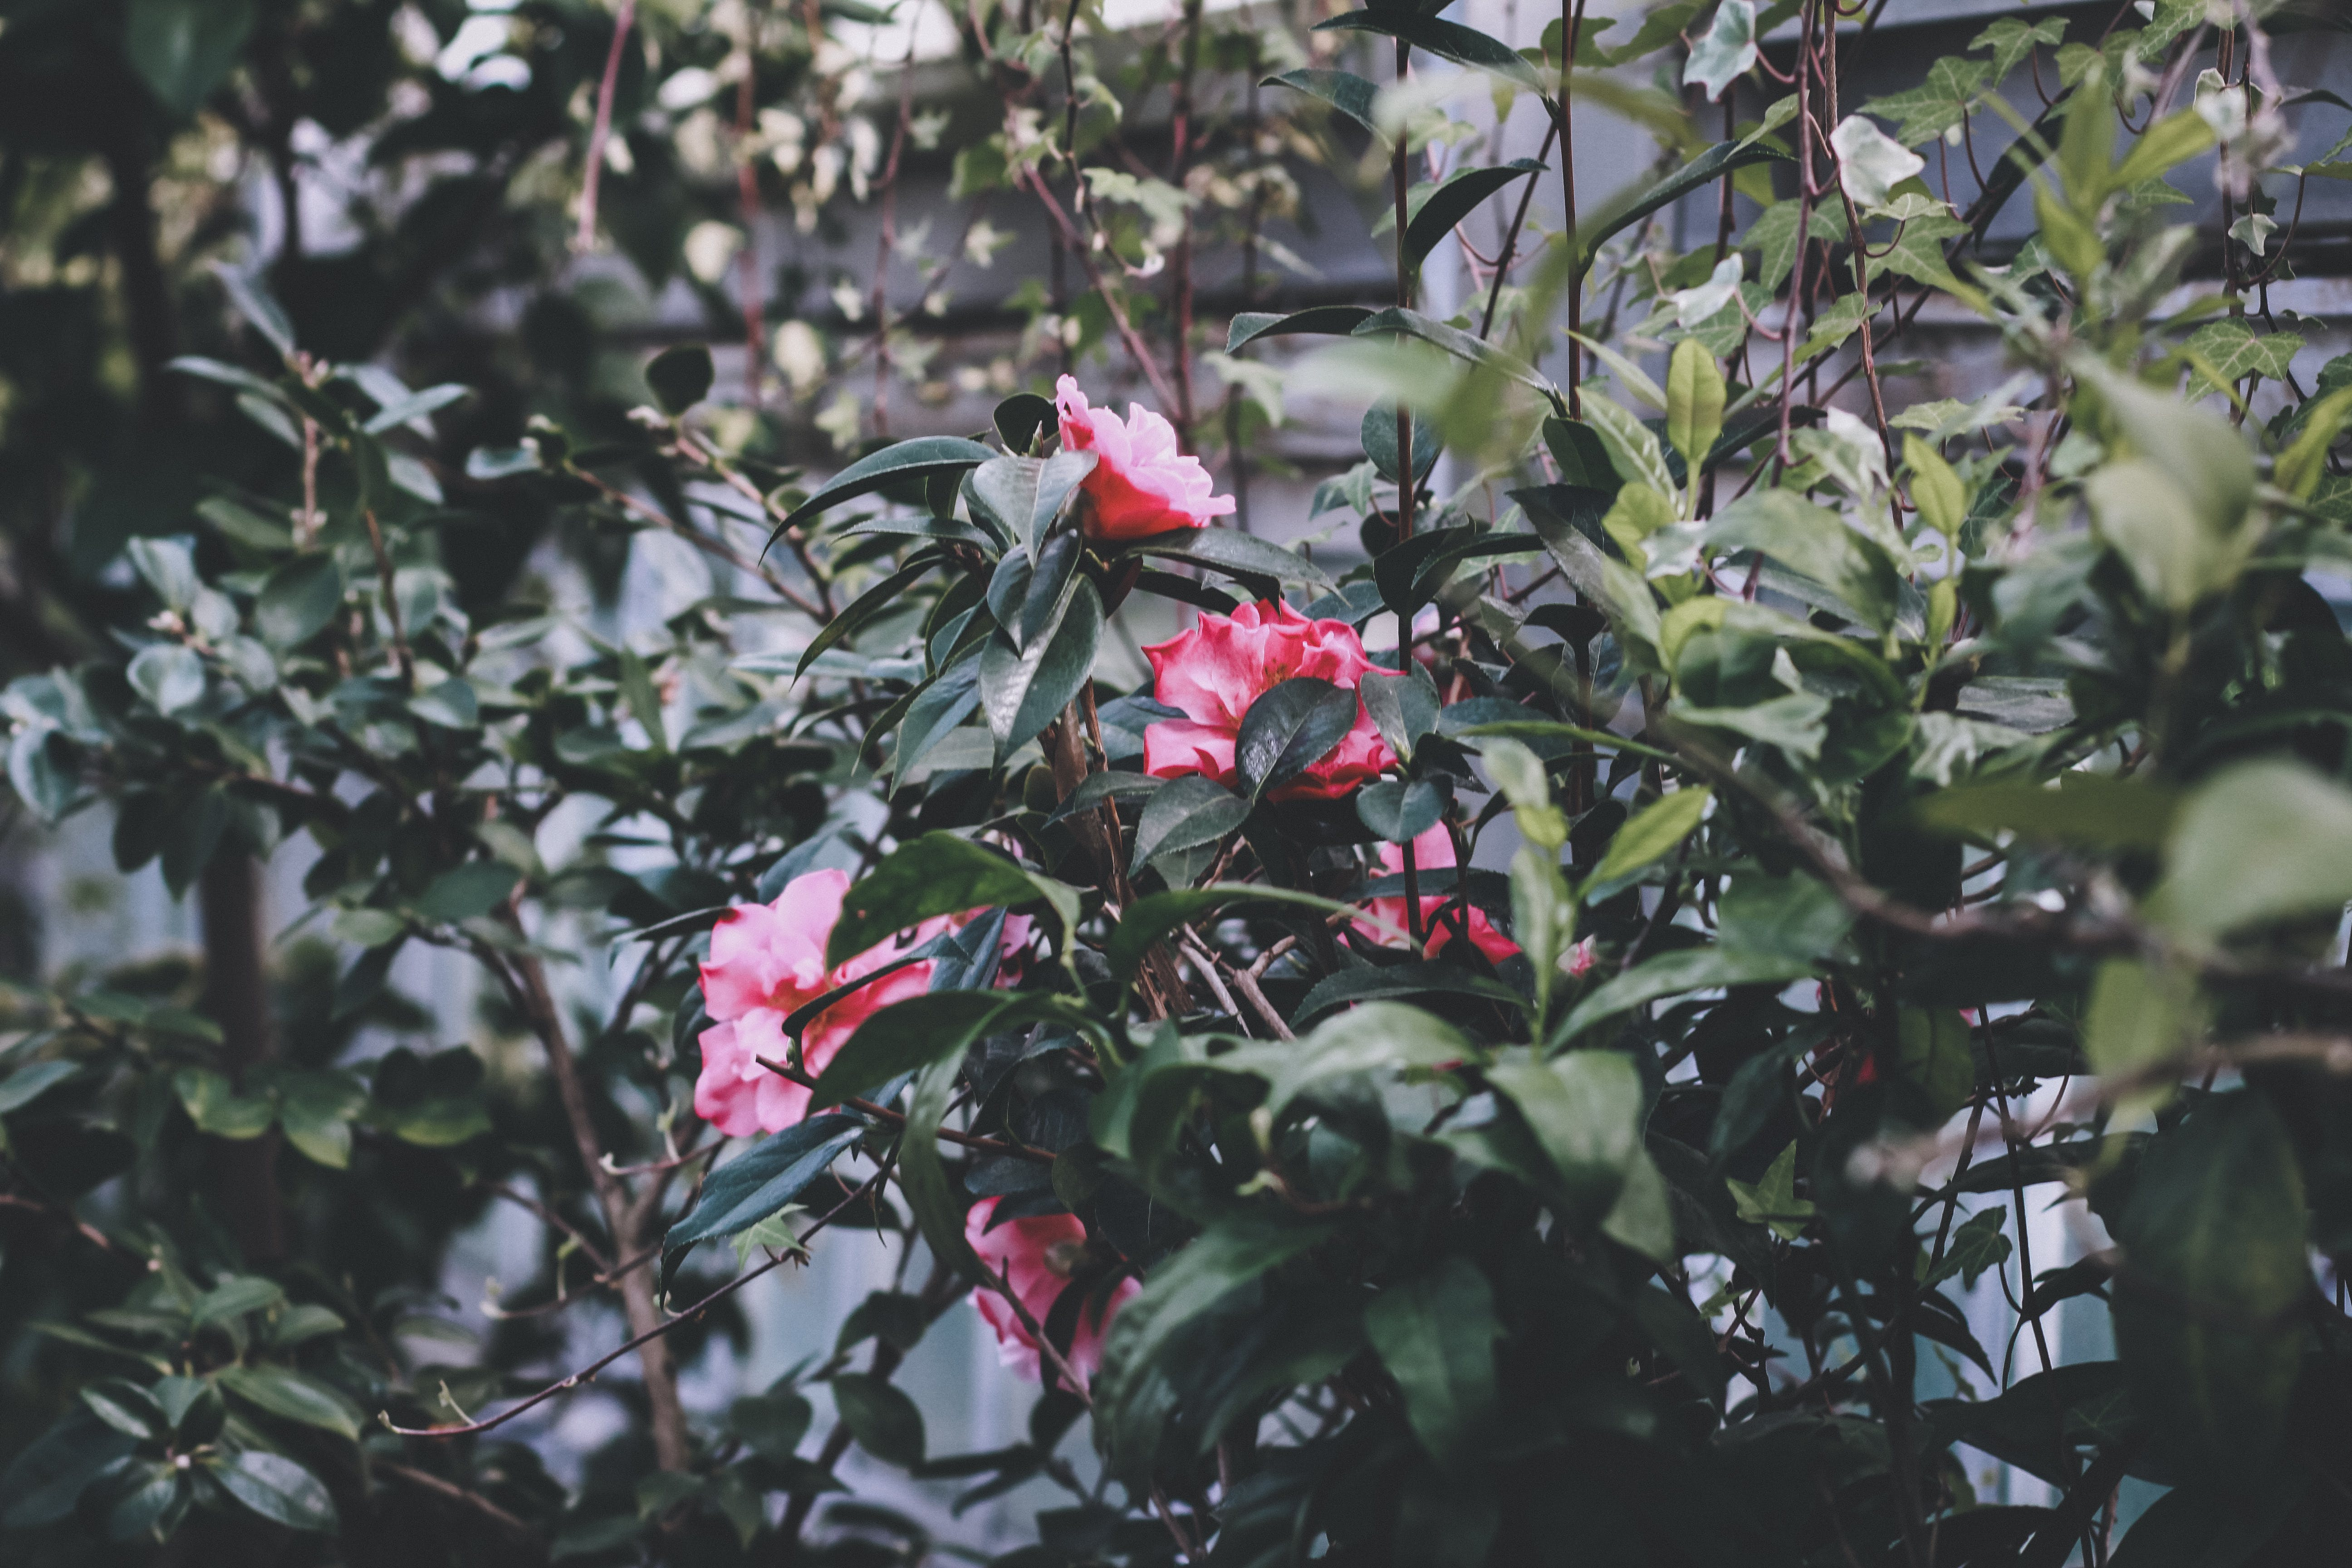 Free stock photo of floral, flowers, green leaves, leaves